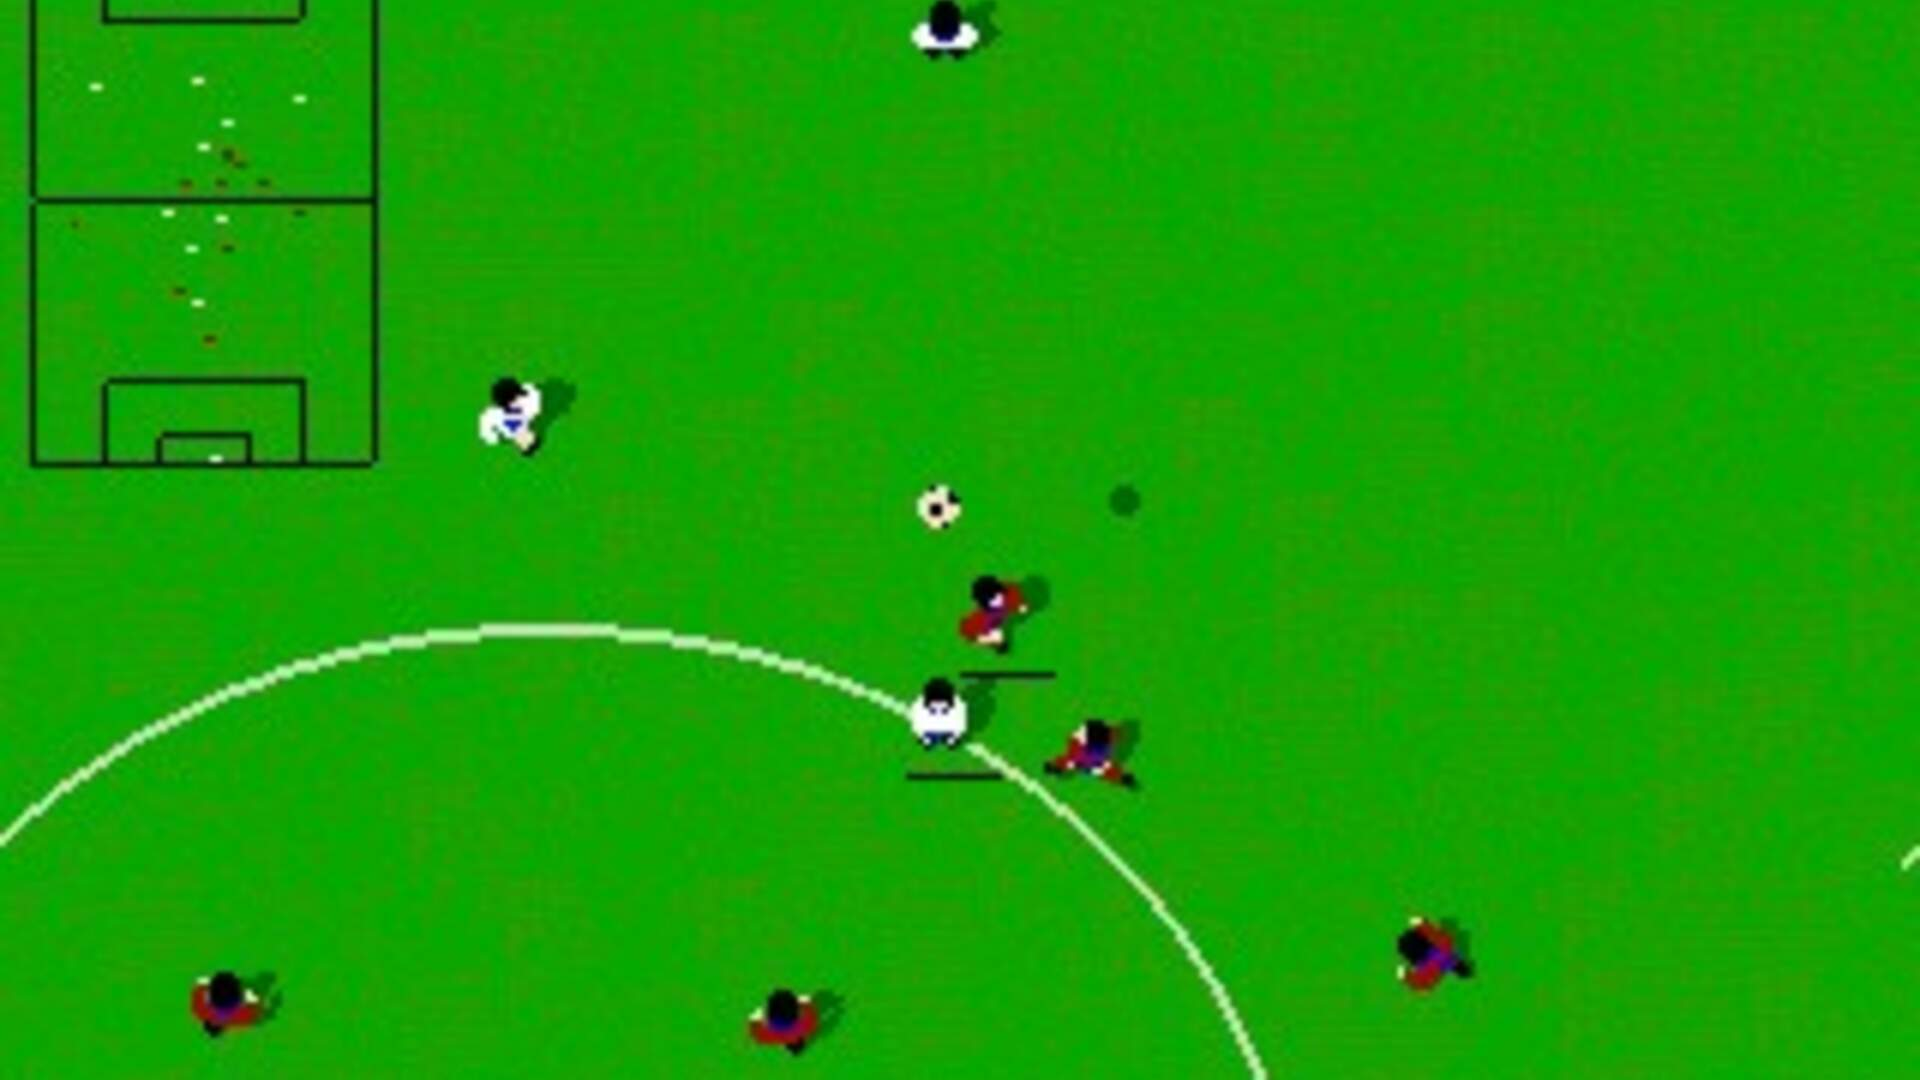 The Classic Arcade Soccer Game Kick Off is Set to Make a Comeback